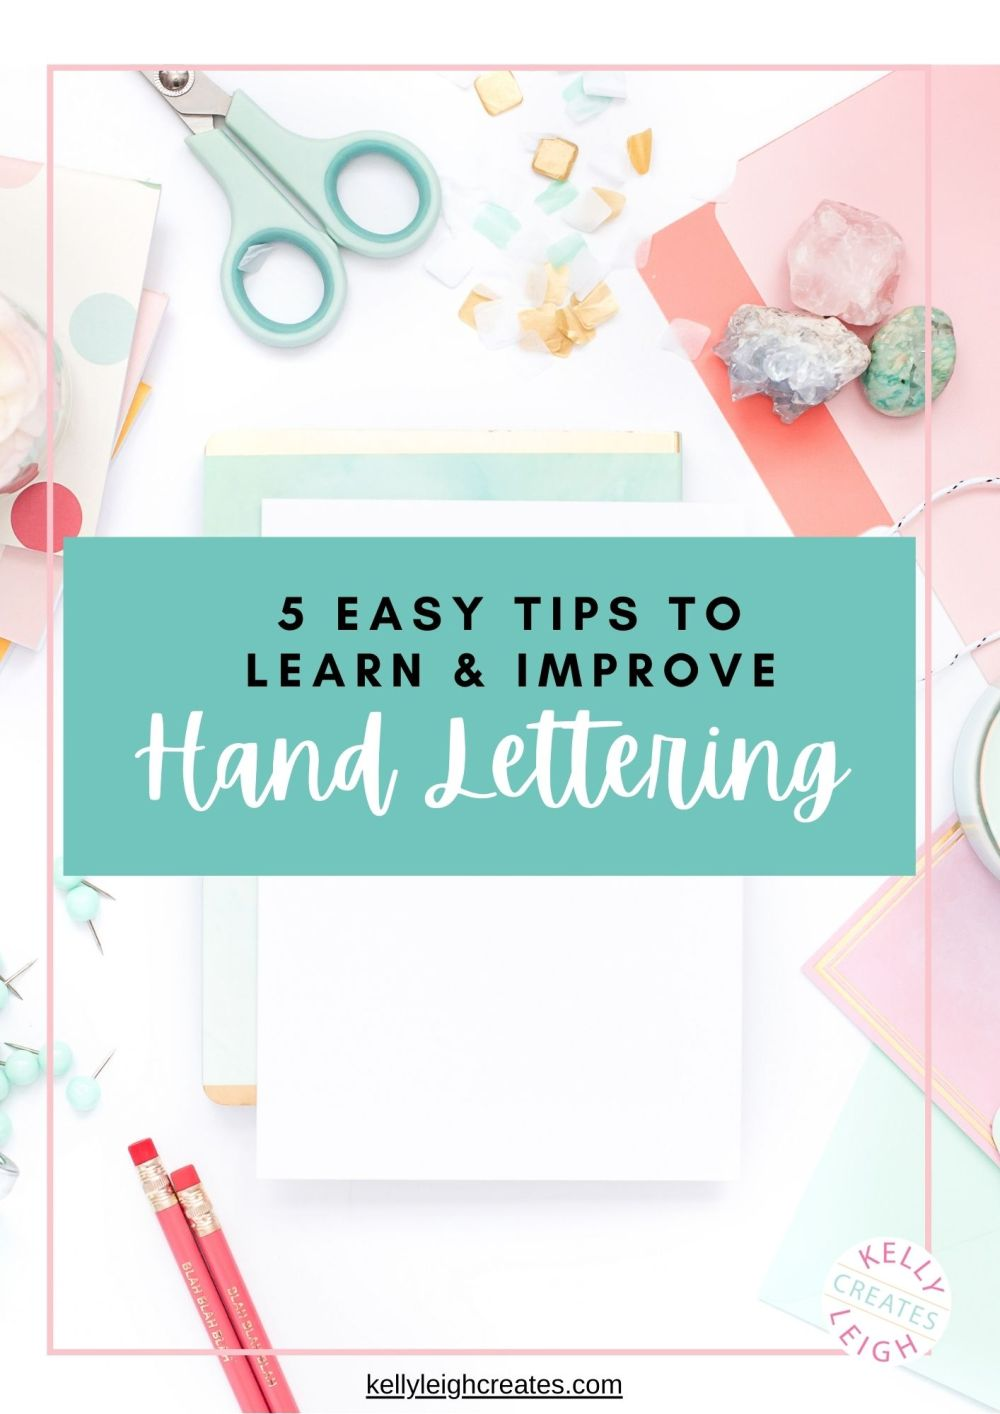 5 Easy Tips to Learn and Improve Hand Lettering